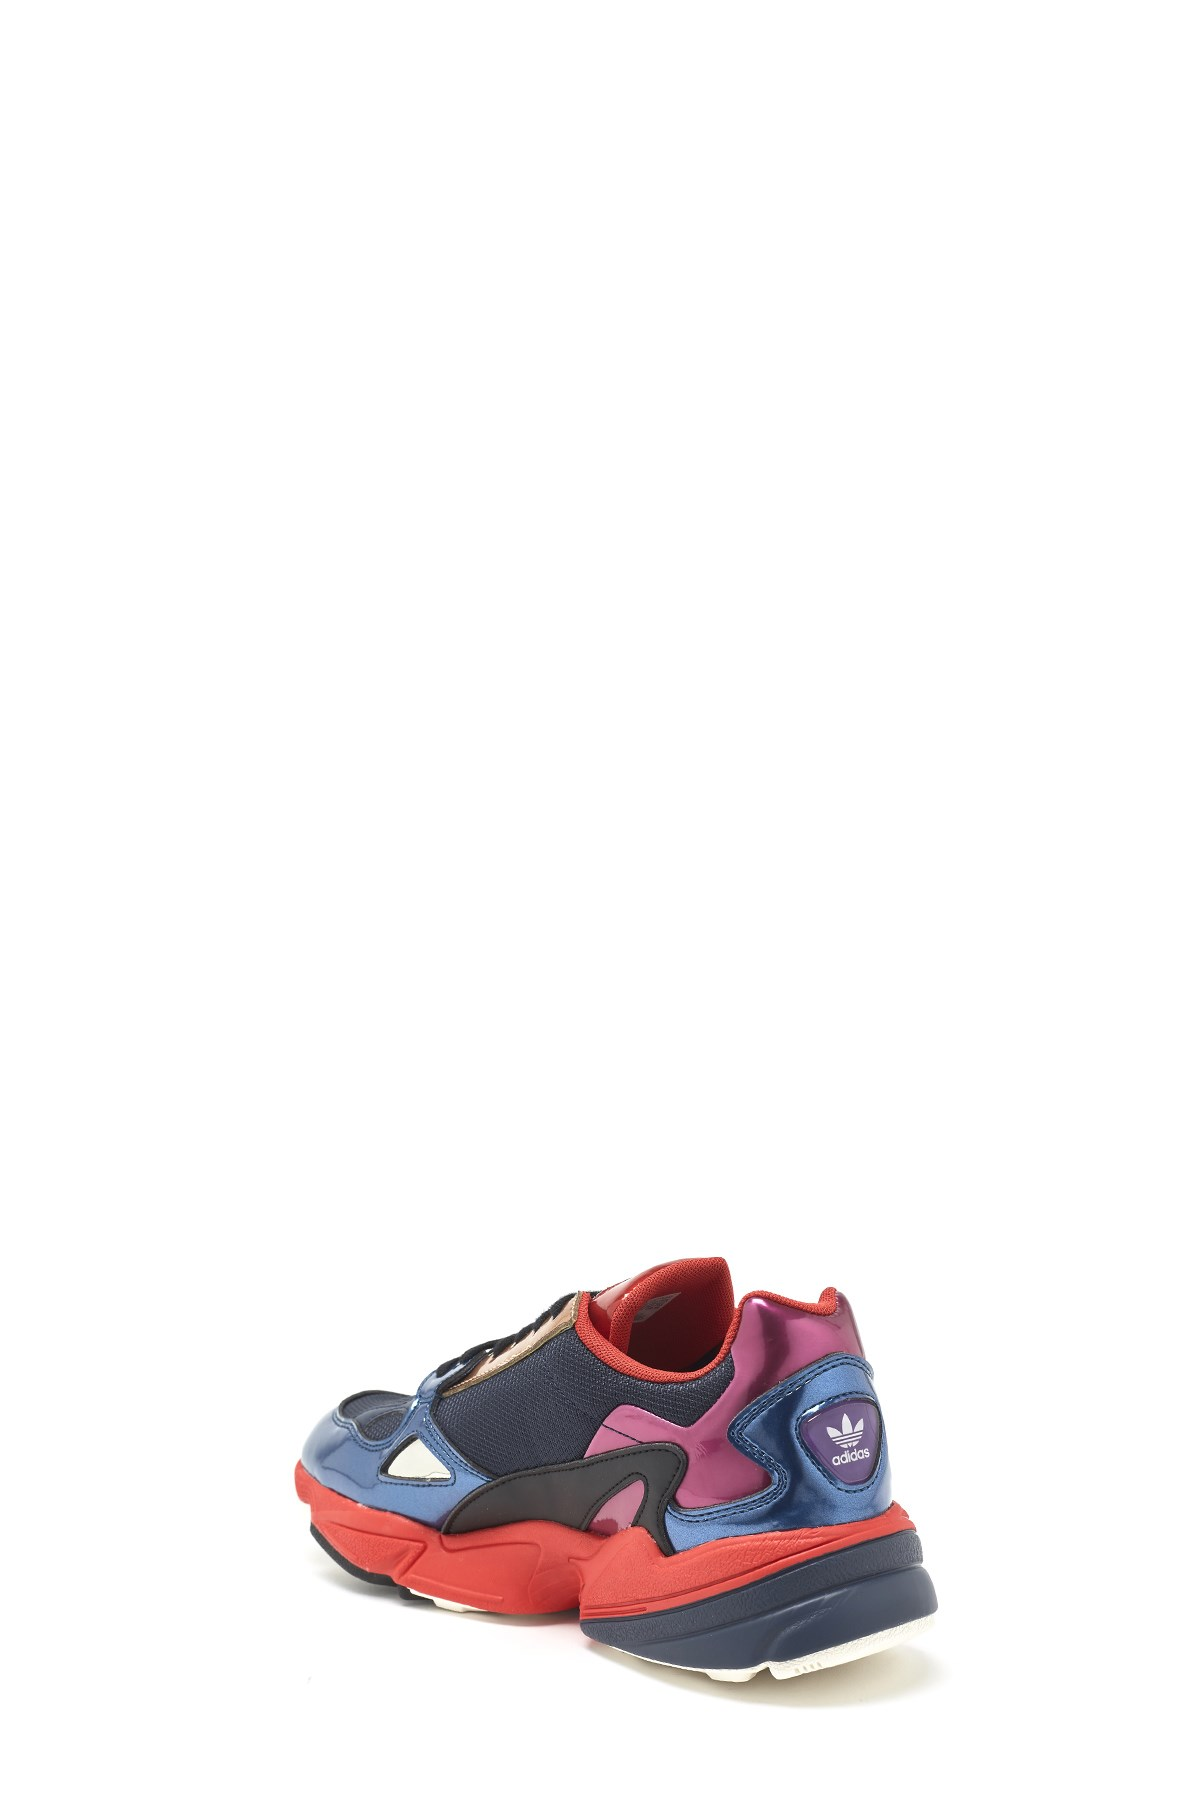 80b47f2bd1d9dc adidas originals  Falcon W  sneakers available on julian-fashion.com ...